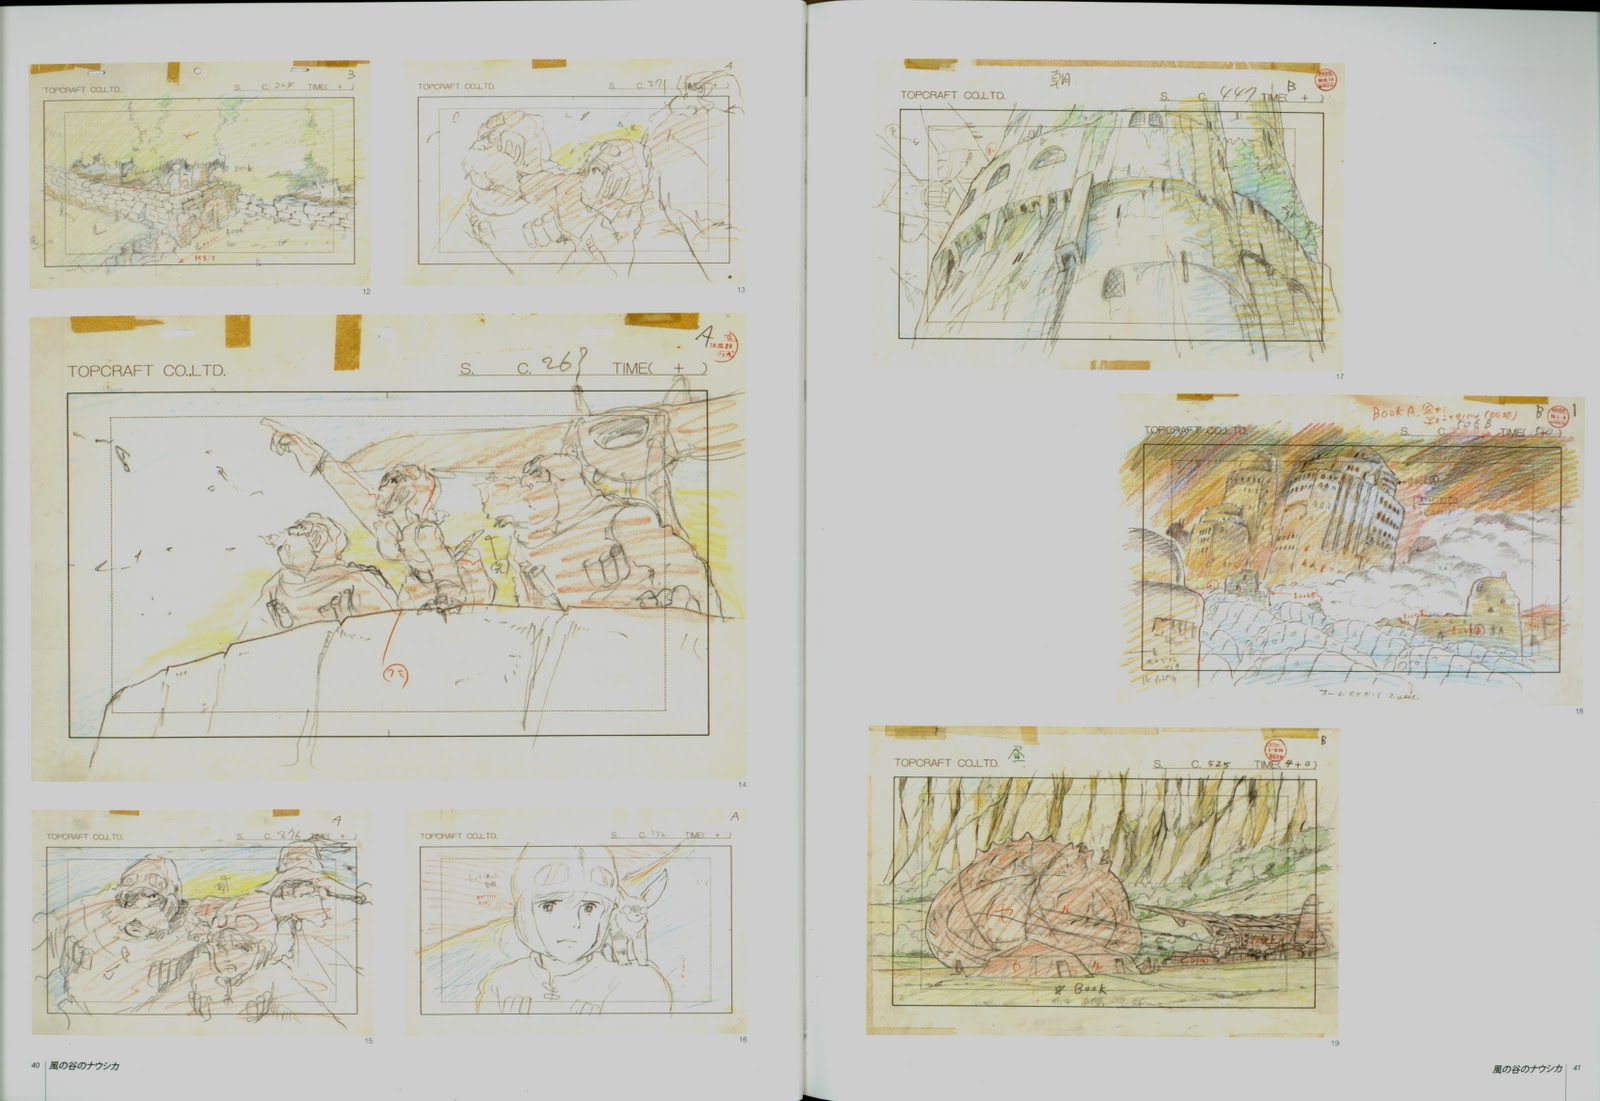 nausicaa_of_the_valley_of_the_wind_concept_art_storyboard_04.jpg